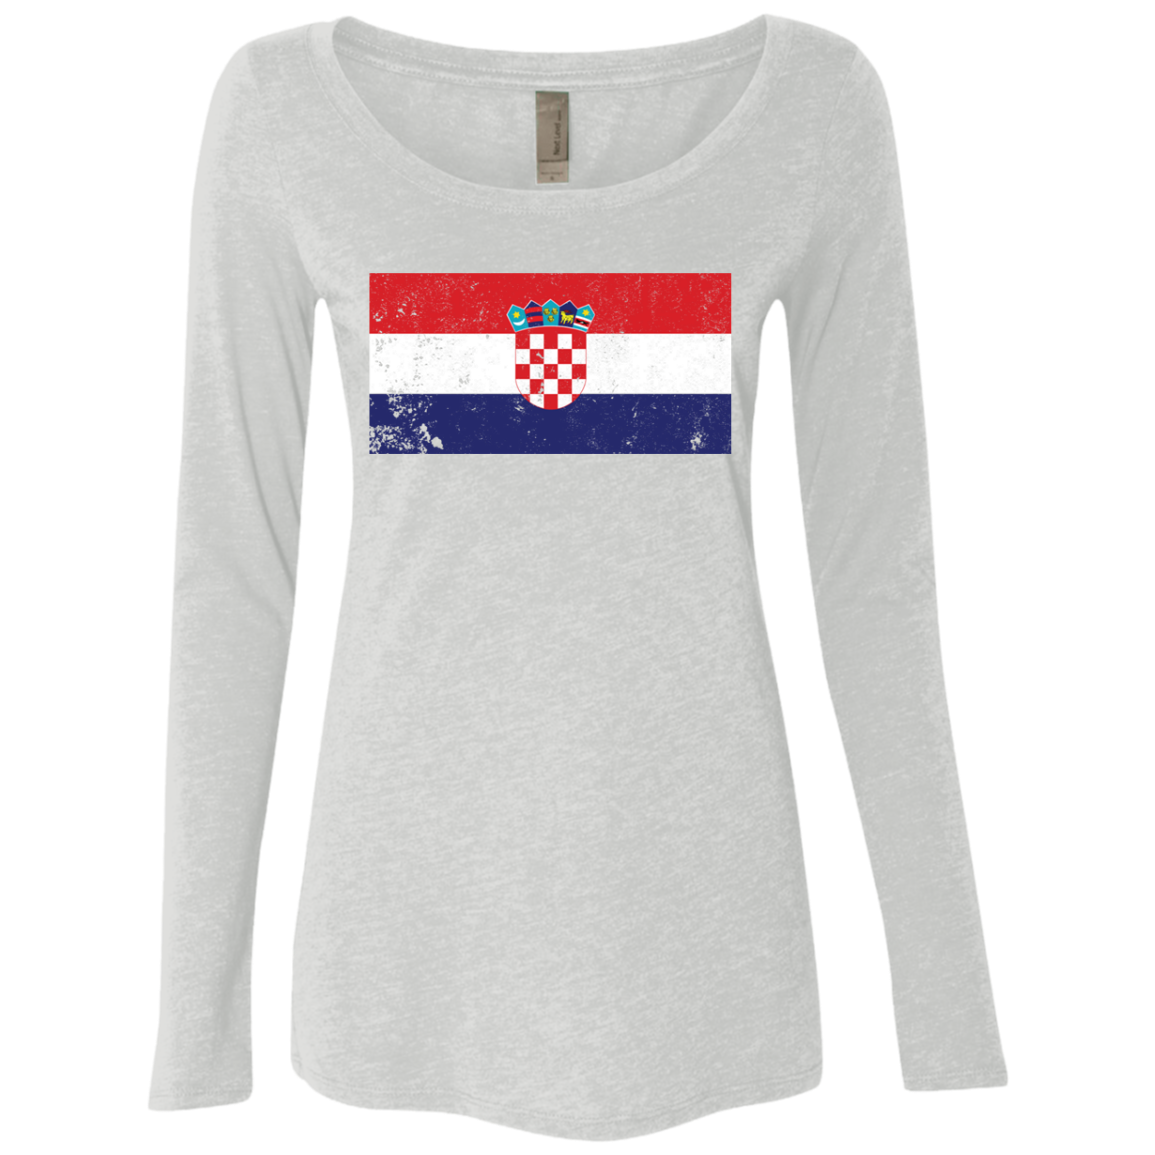 Croatia Women's Long Sleeve Tee